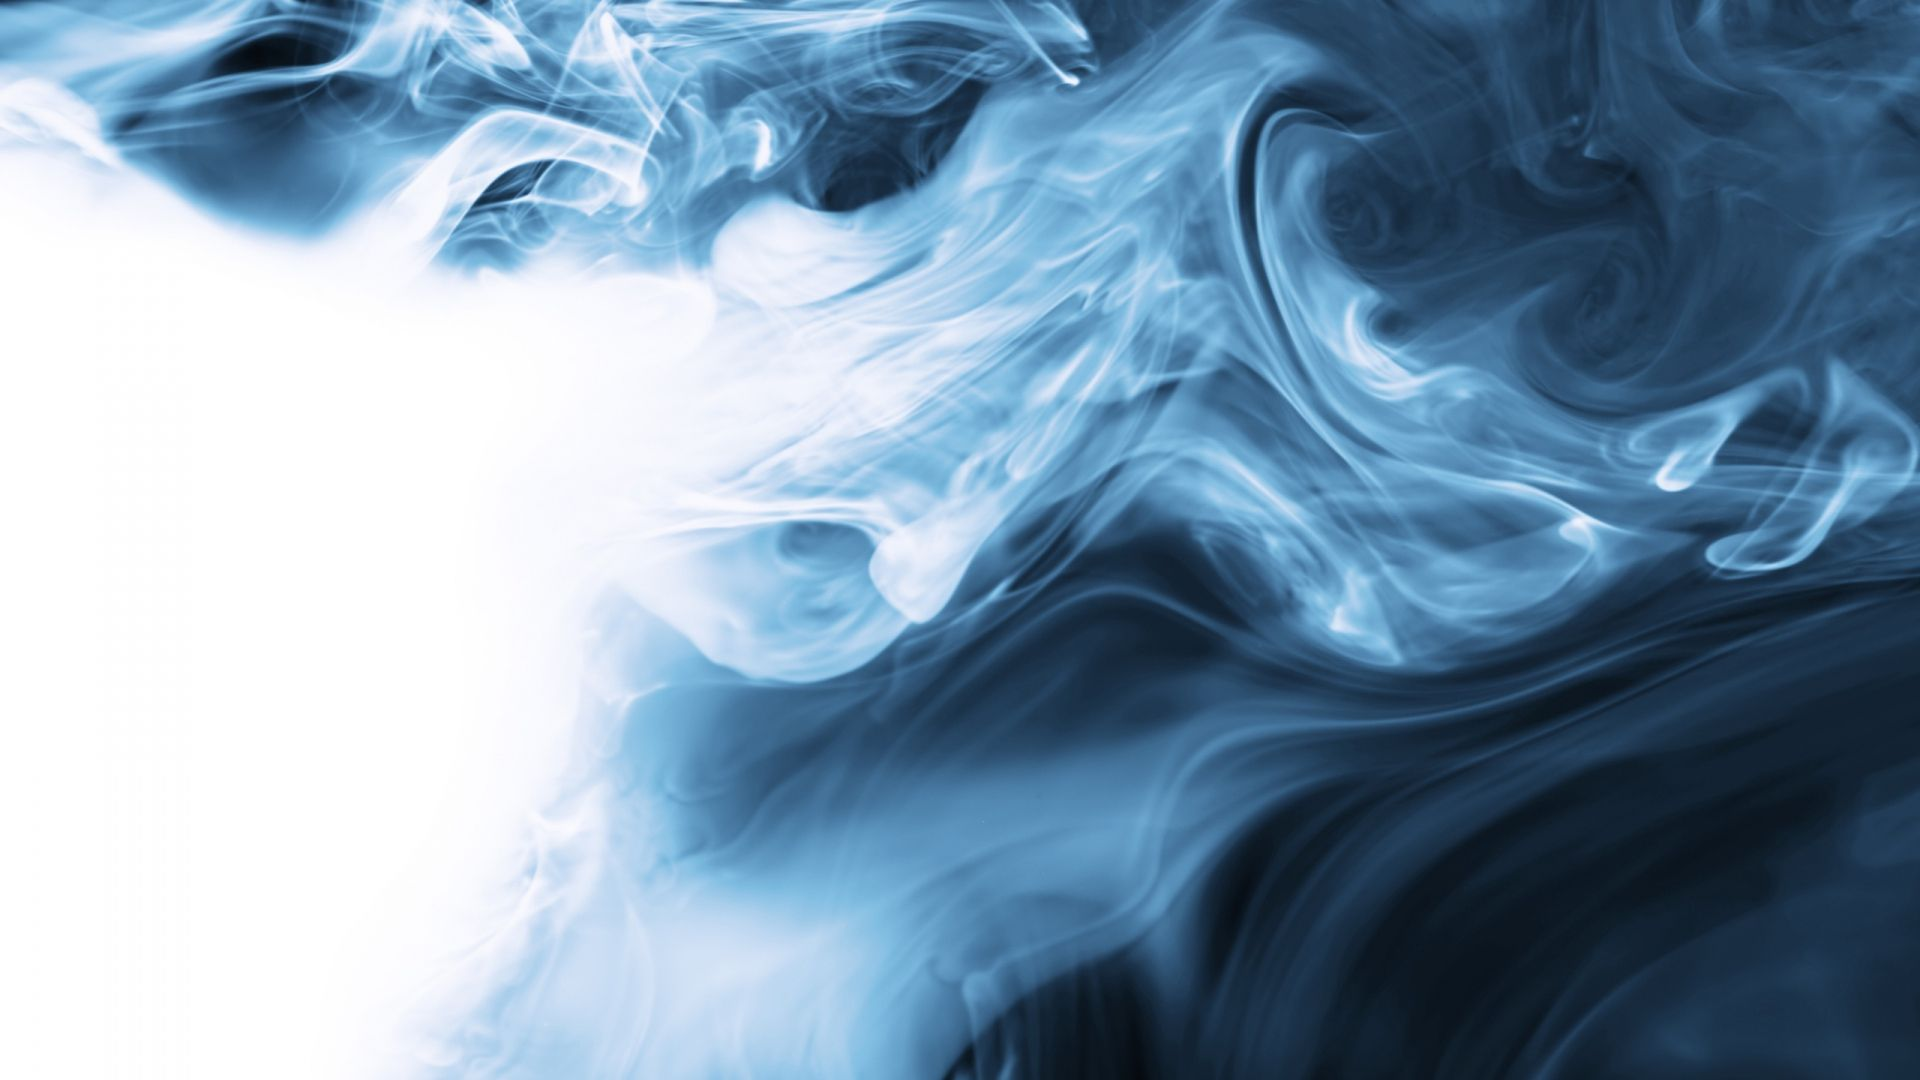 Smoke Blue White Http Www Wallpapers4u Org Smoke Blue White Smoke Wallpaper Abstract Smoke Art